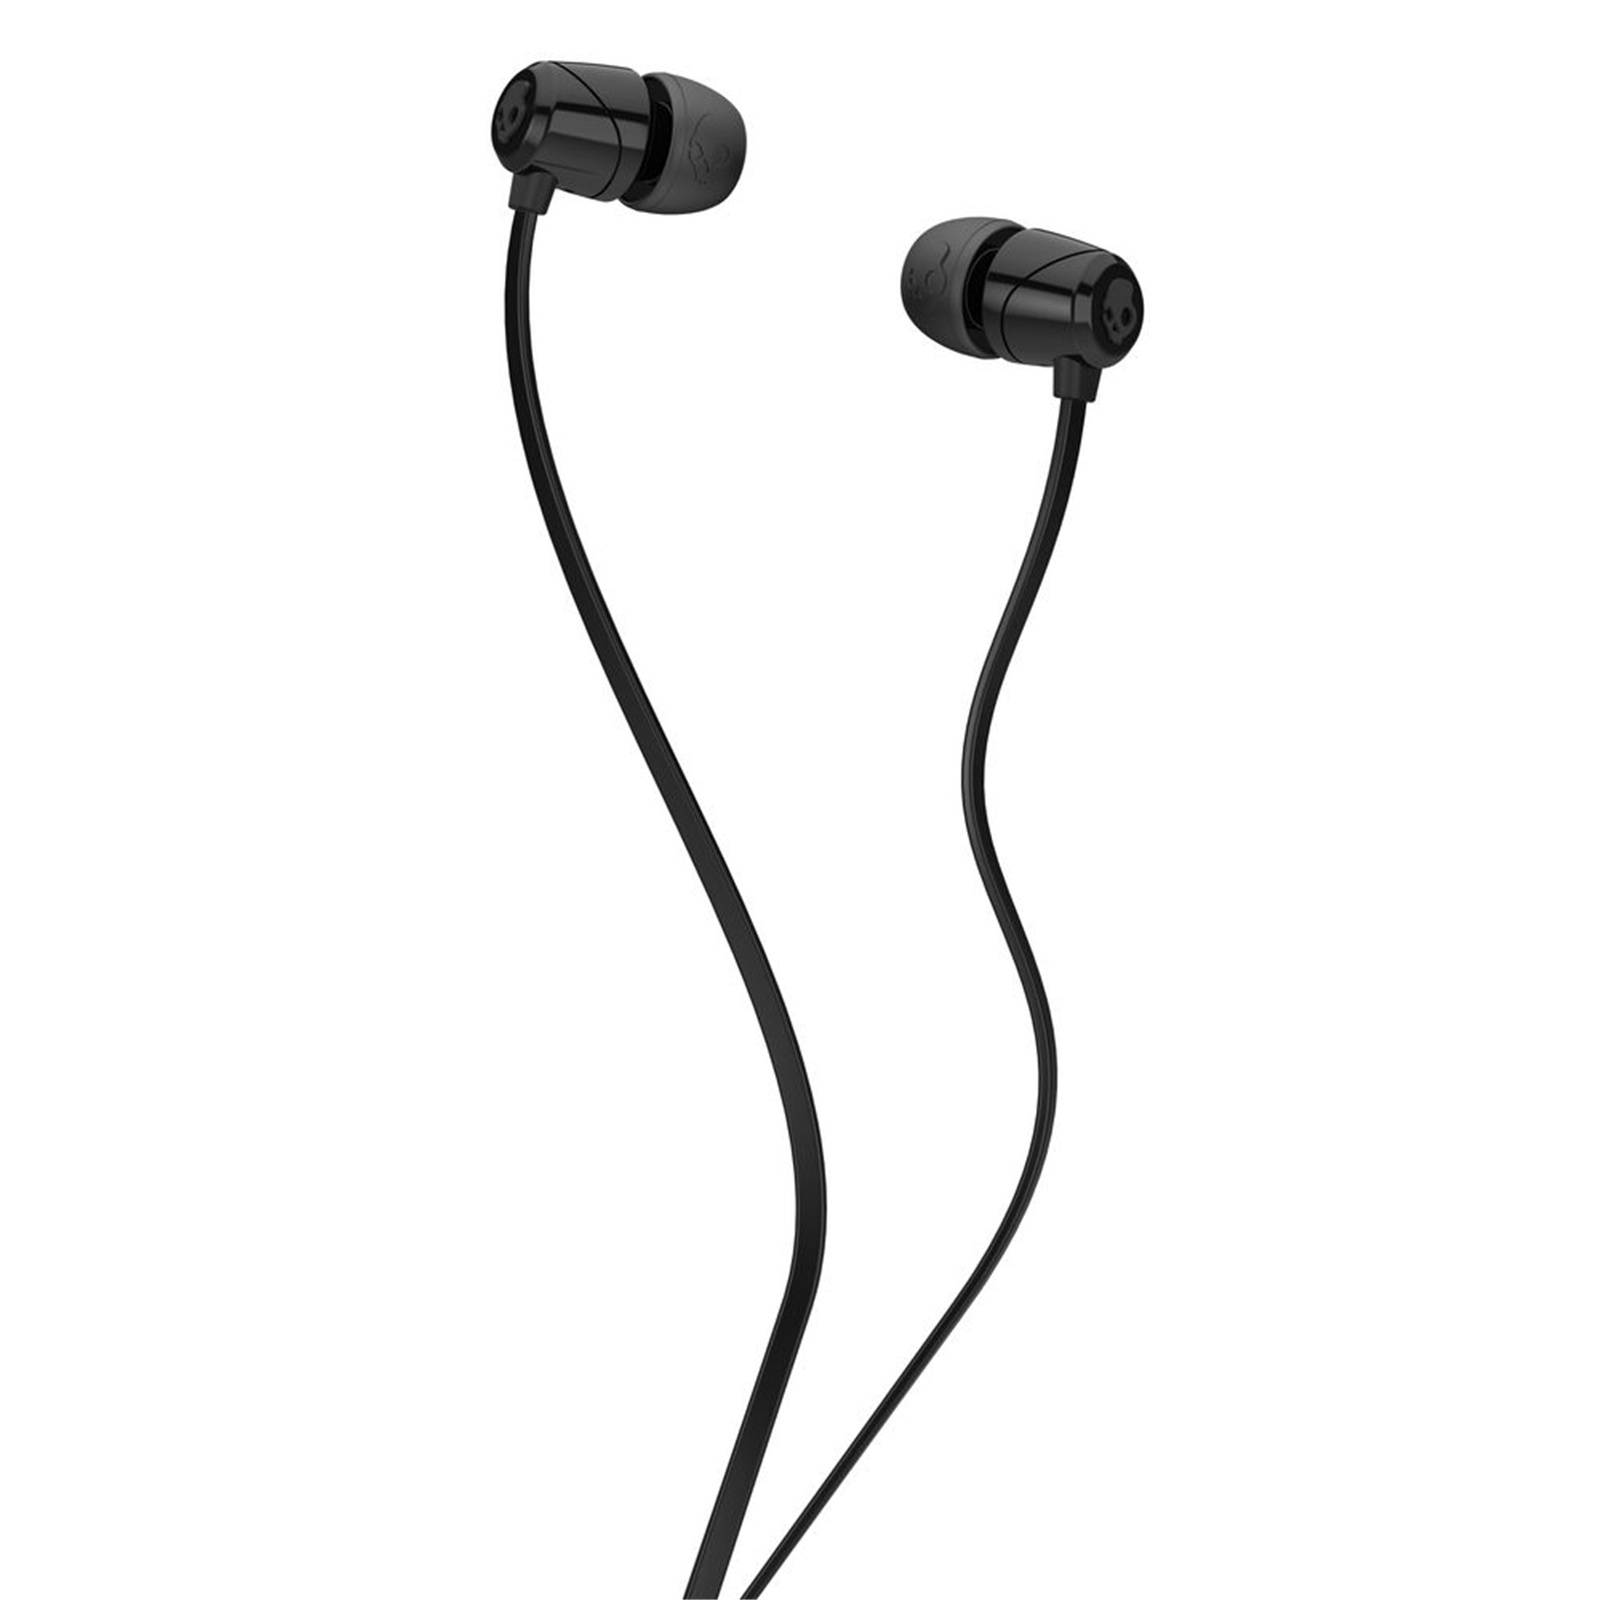 Best earbuds mic - bulk earbuds with microphone